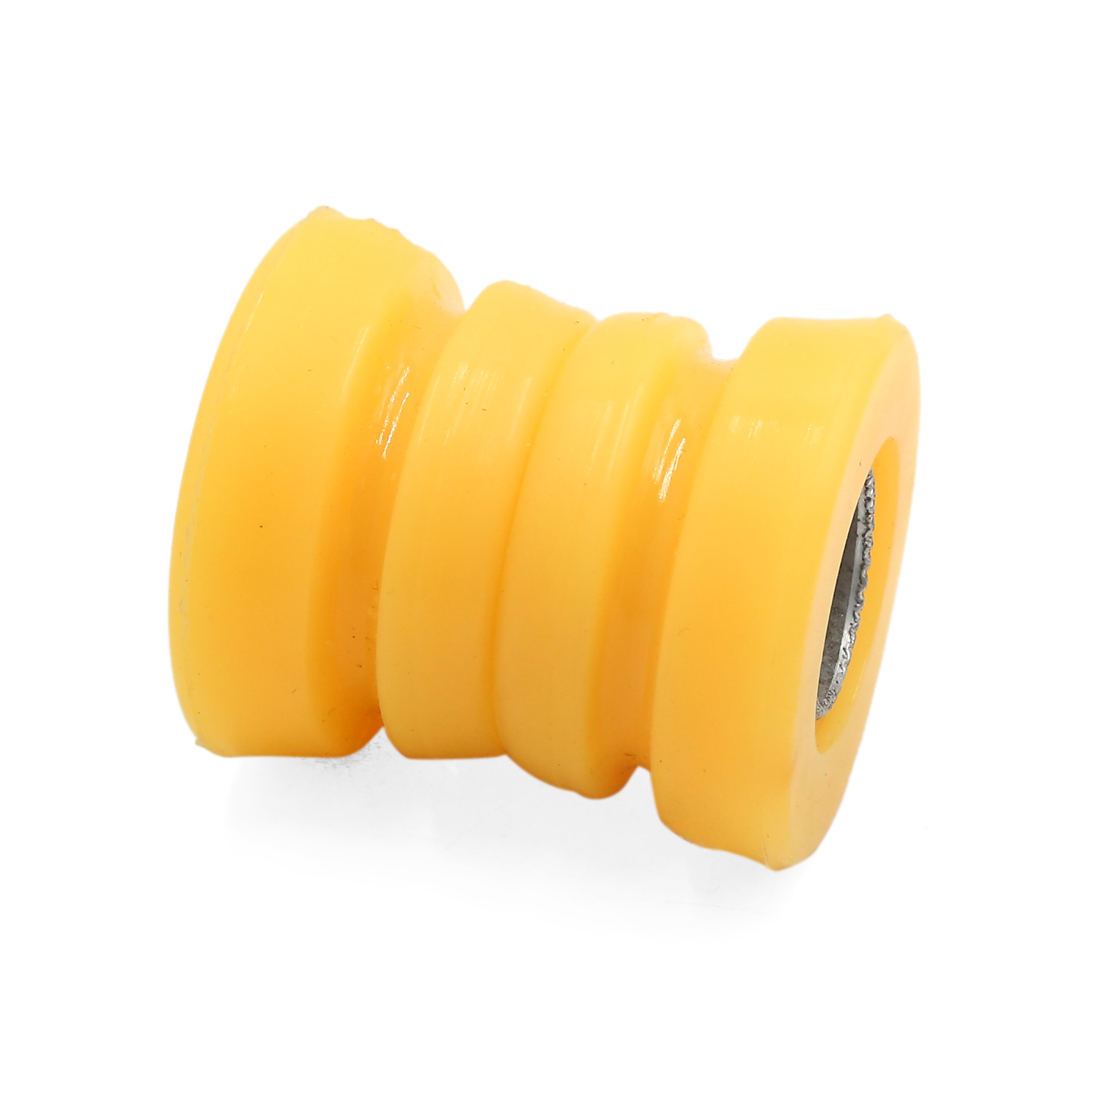 48 x 19 x 9mm Yellow Rubber Shock Absorber Bushings Damper for Auto Car